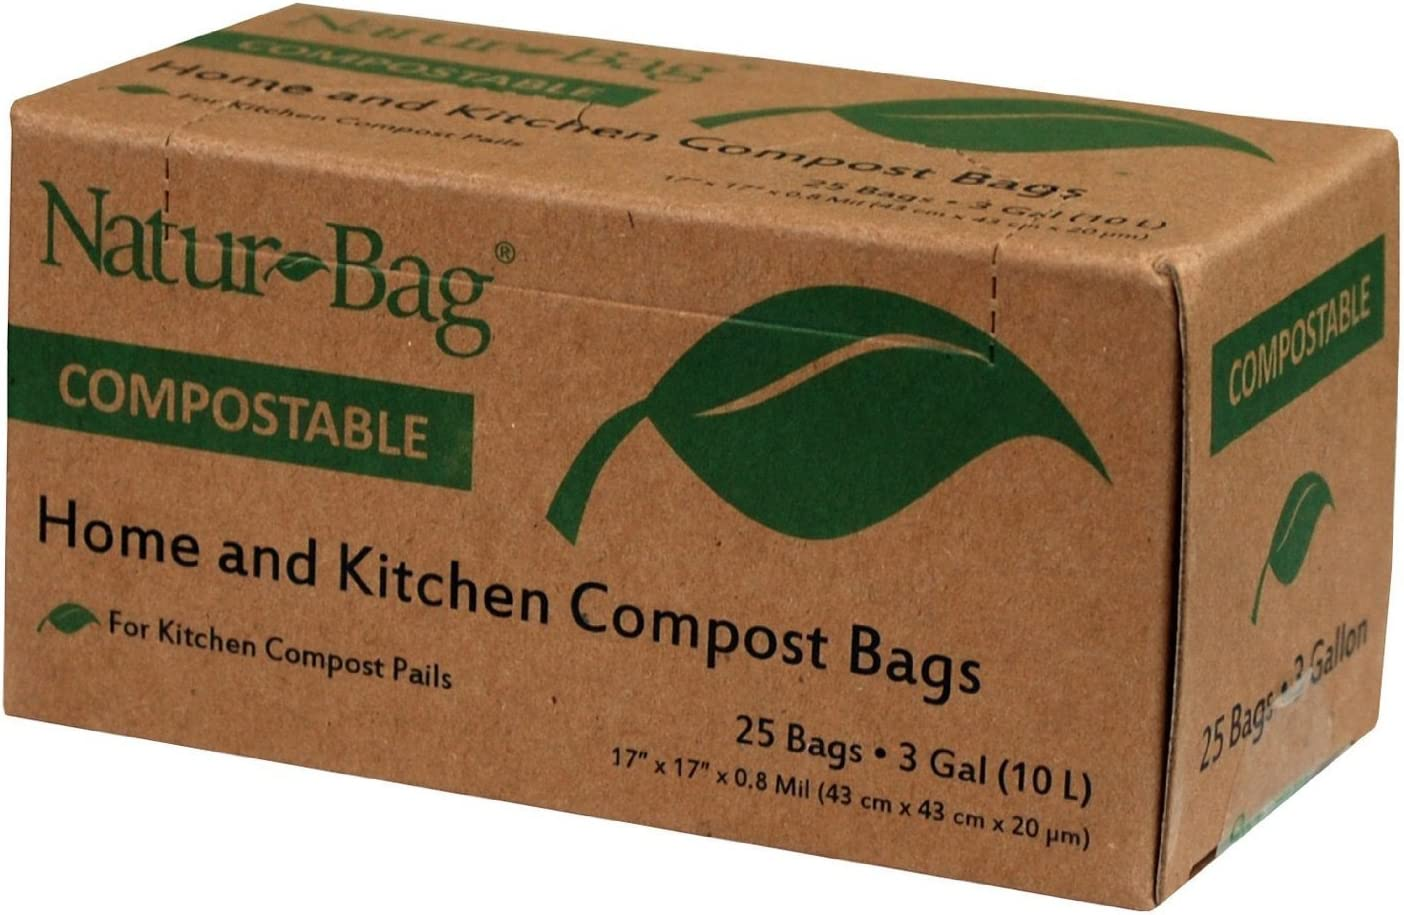 (Pack of 3) Natur-Bag Small Food Waste Compostable Bags - 3 Gallon, 25 Bags